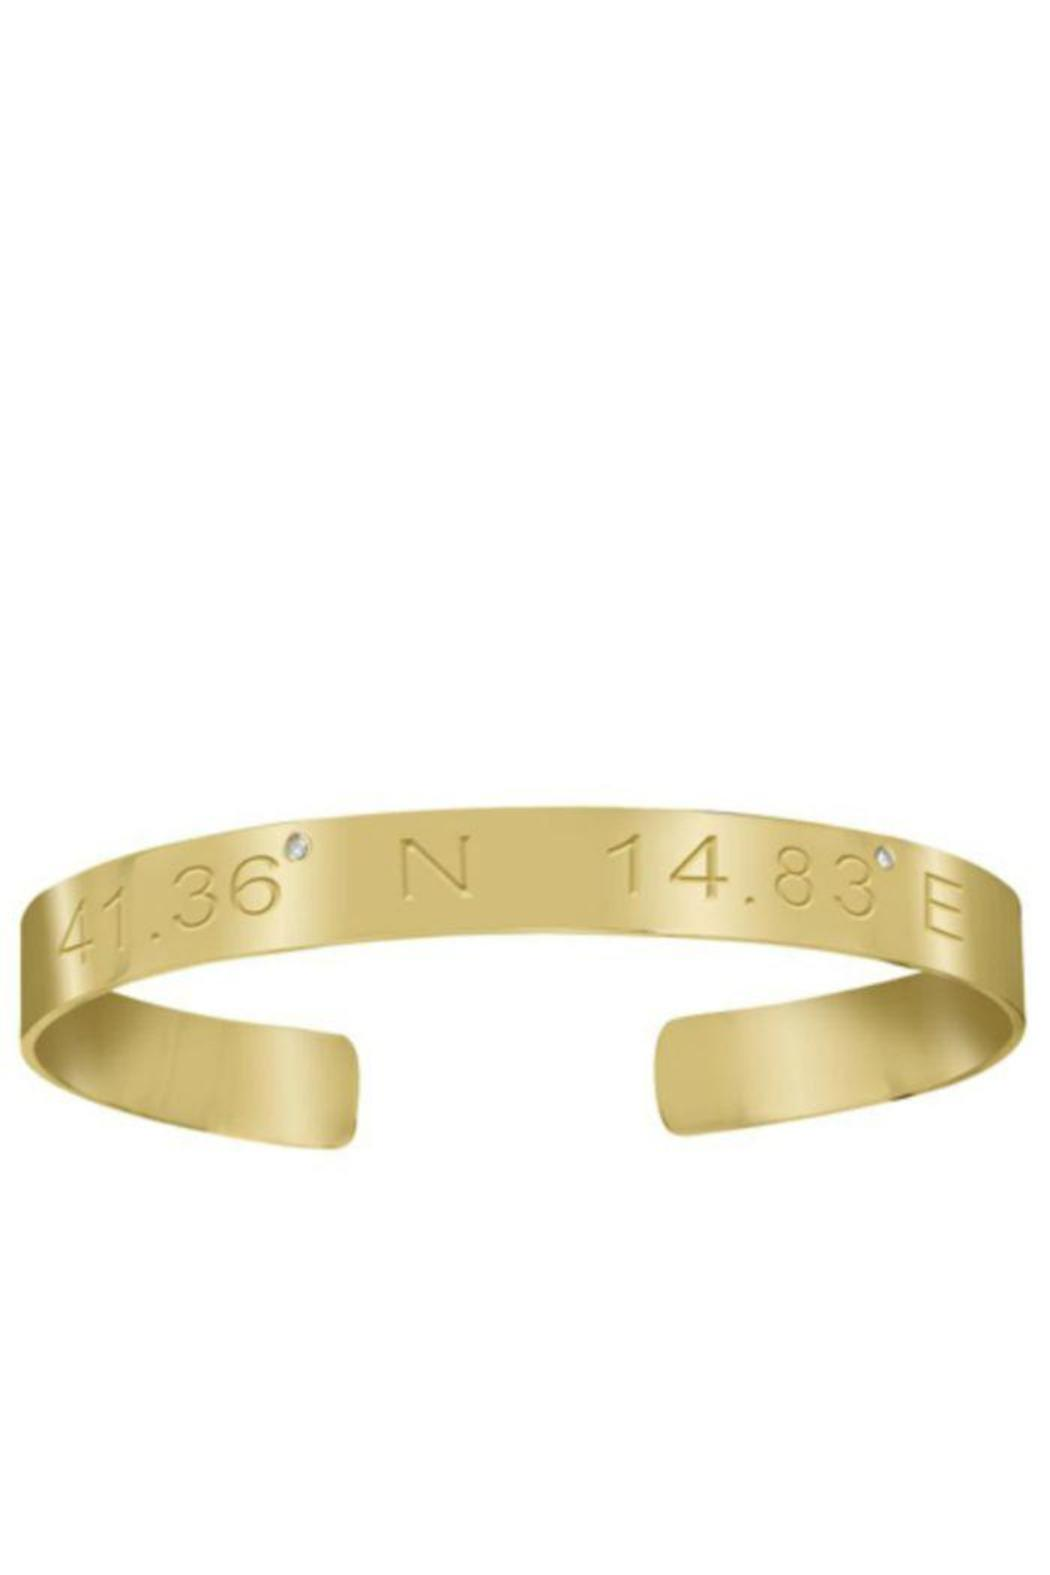 gem s from let by bracelet l york image gold factor longitude products latitude front cropped and new